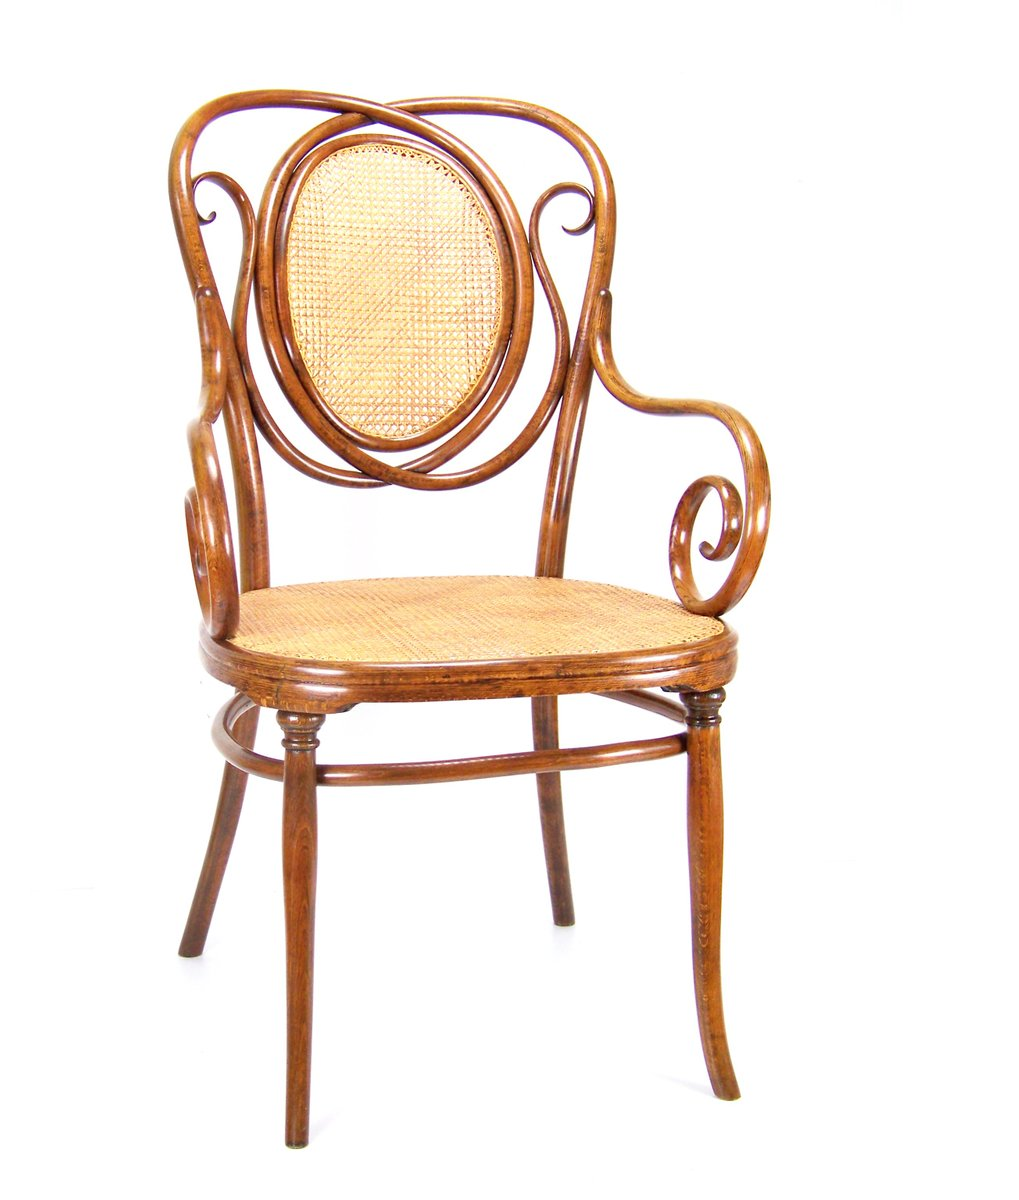 Antique No 22 Armchair From Thonet For Sale At Pamono